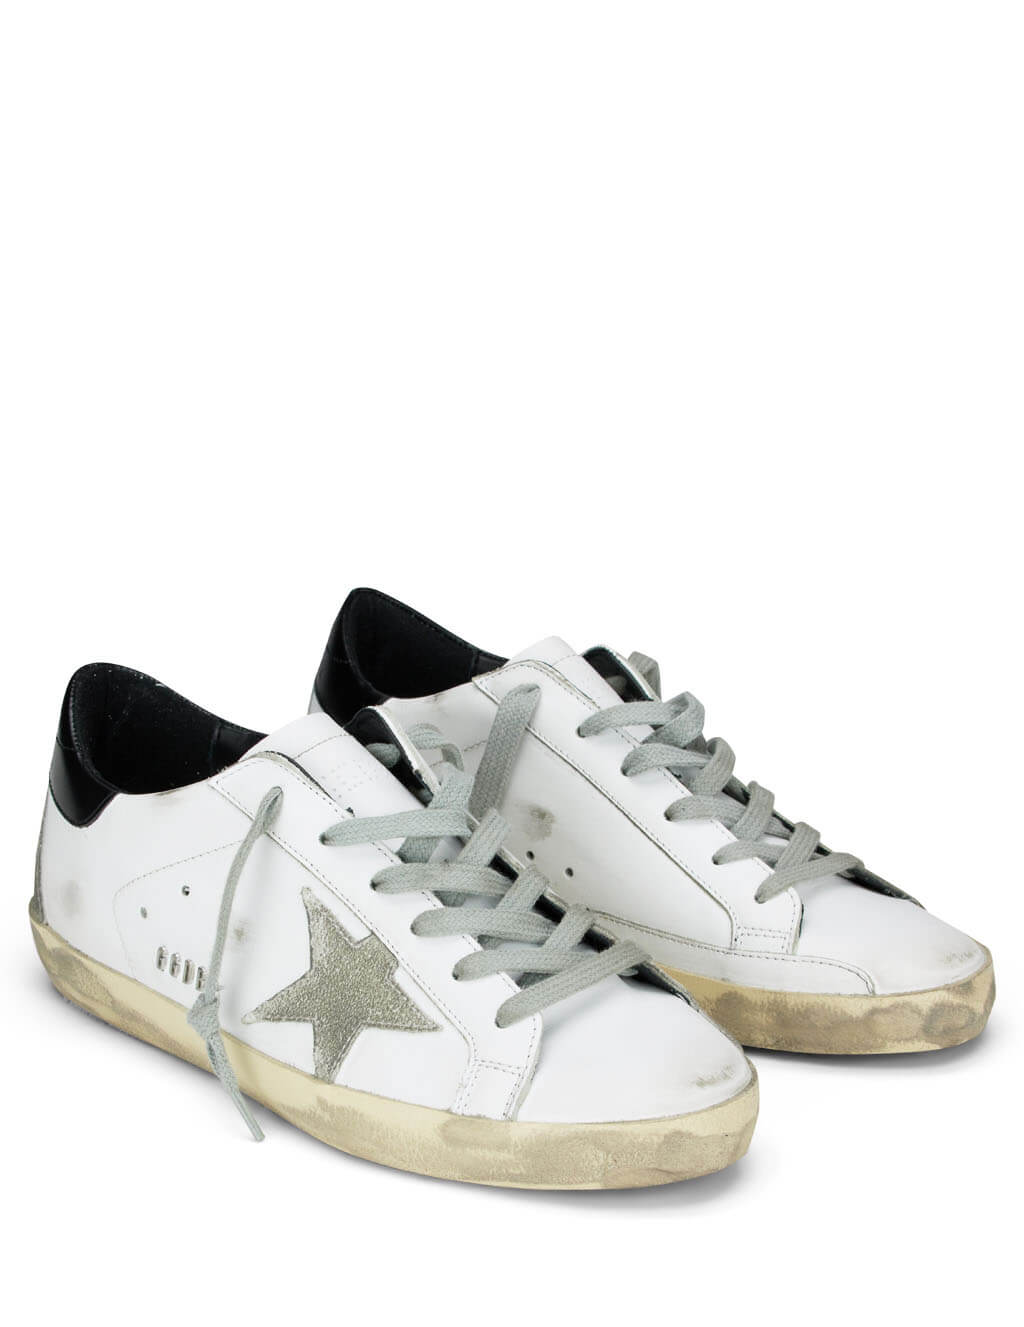 Women's White and Black Golden Goose Superstar Sneakers GCOWS590.W55